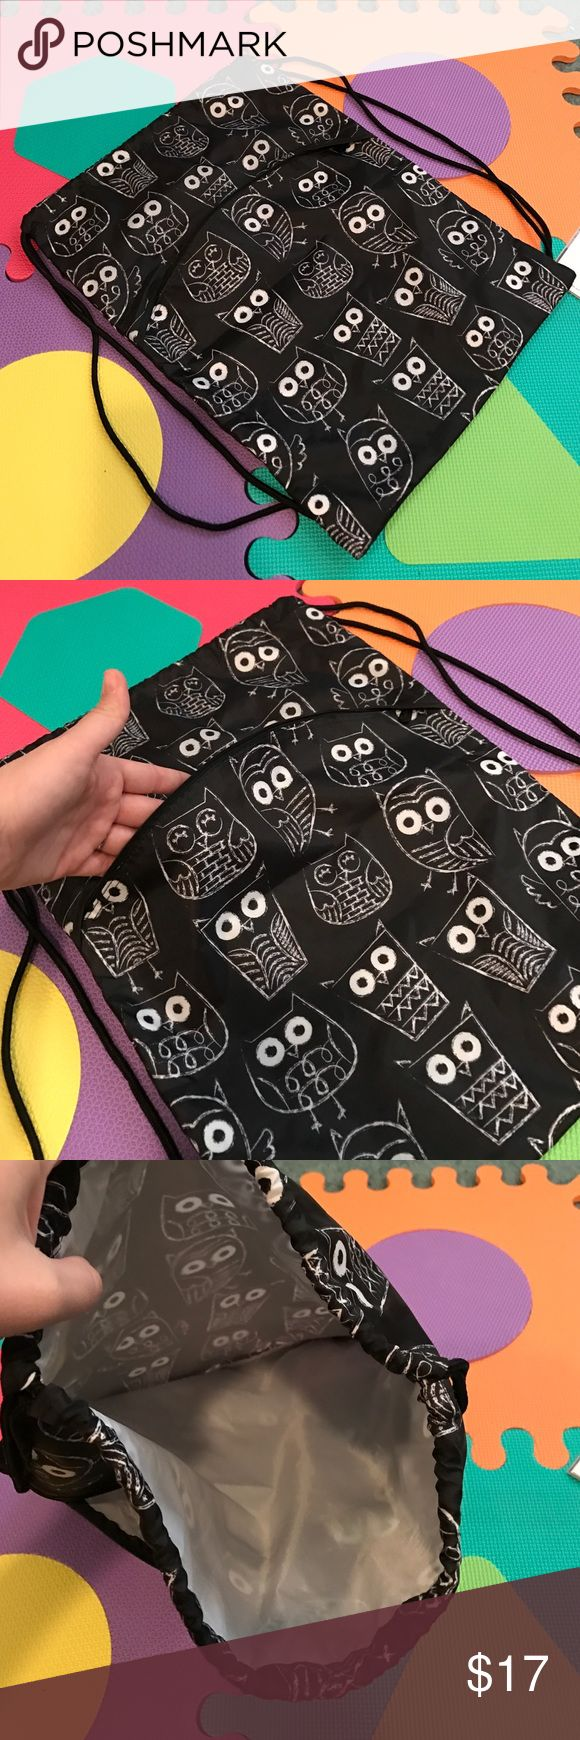 Owl cinch sack NWOT Brand new owl cinch sack just selling before next seasons prints come out! Quality fabric makes it pretty water proof and cute pattern is great for kids Thirty-One Accessories Bags